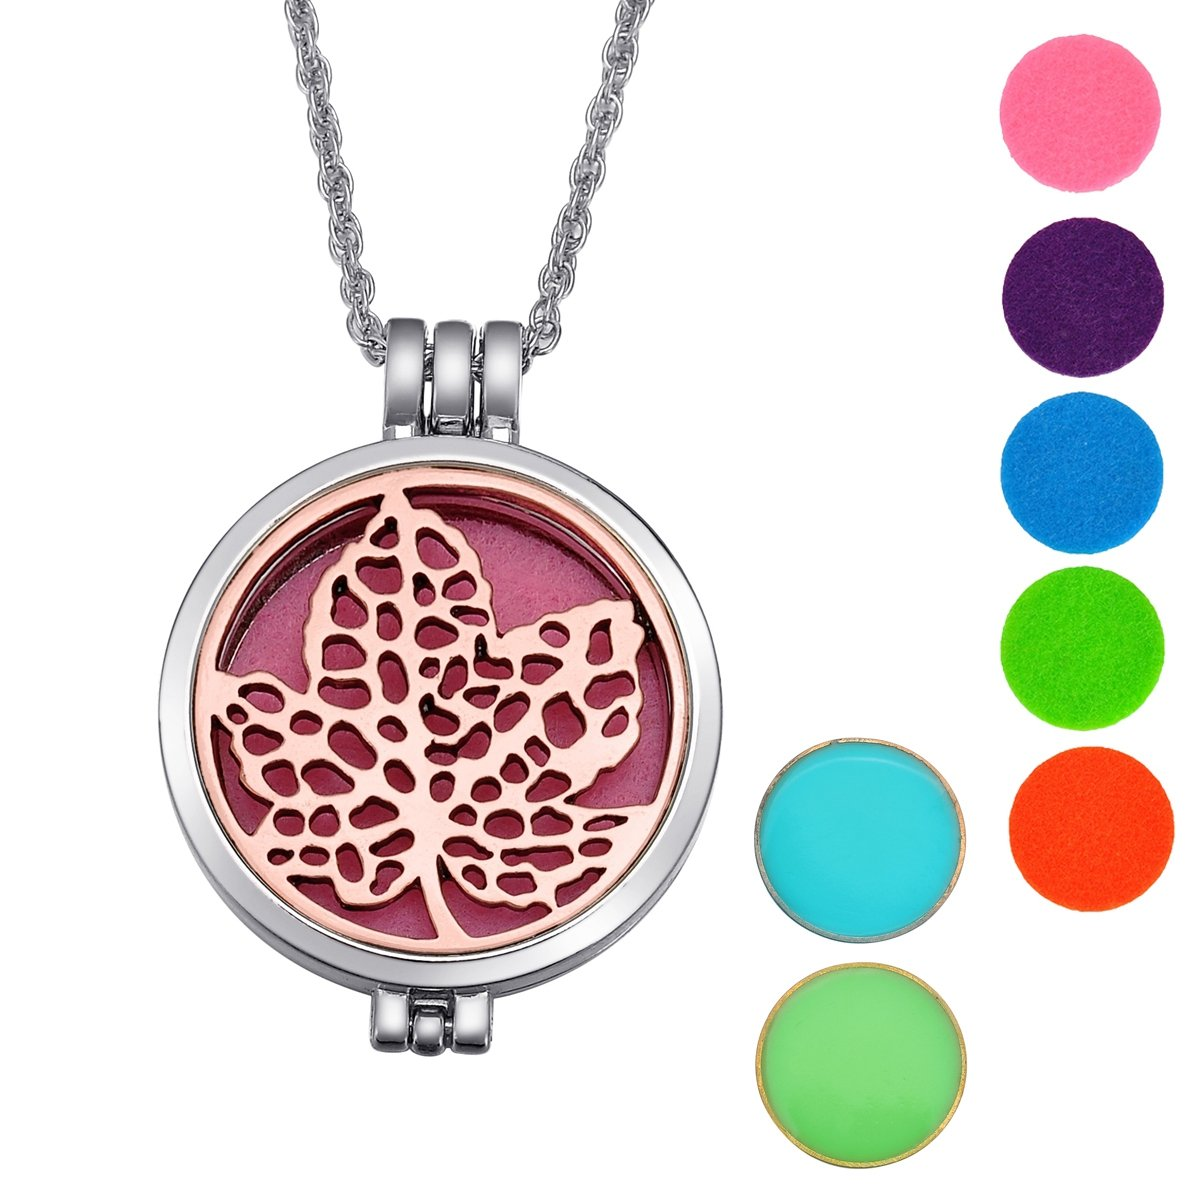 Aromatherapy Essential Oil Diffuser Necklace Window Grille Luminous Pendant Locket Supreme glory Necklace1201A131